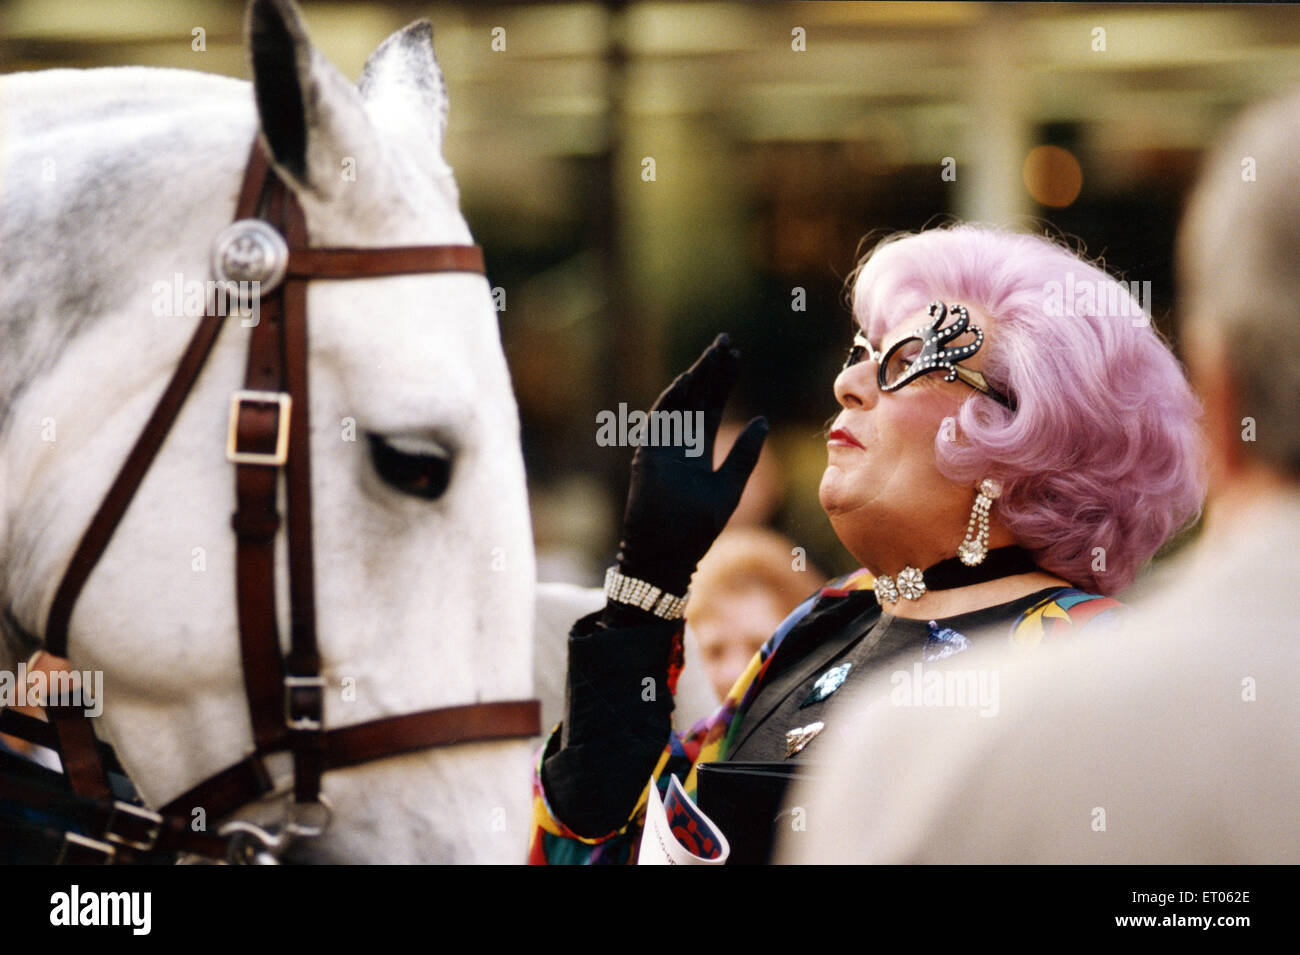 Dame Edna Everage aka Barry Humphries visits Newcastle. 28th November 1995. - Stock Image